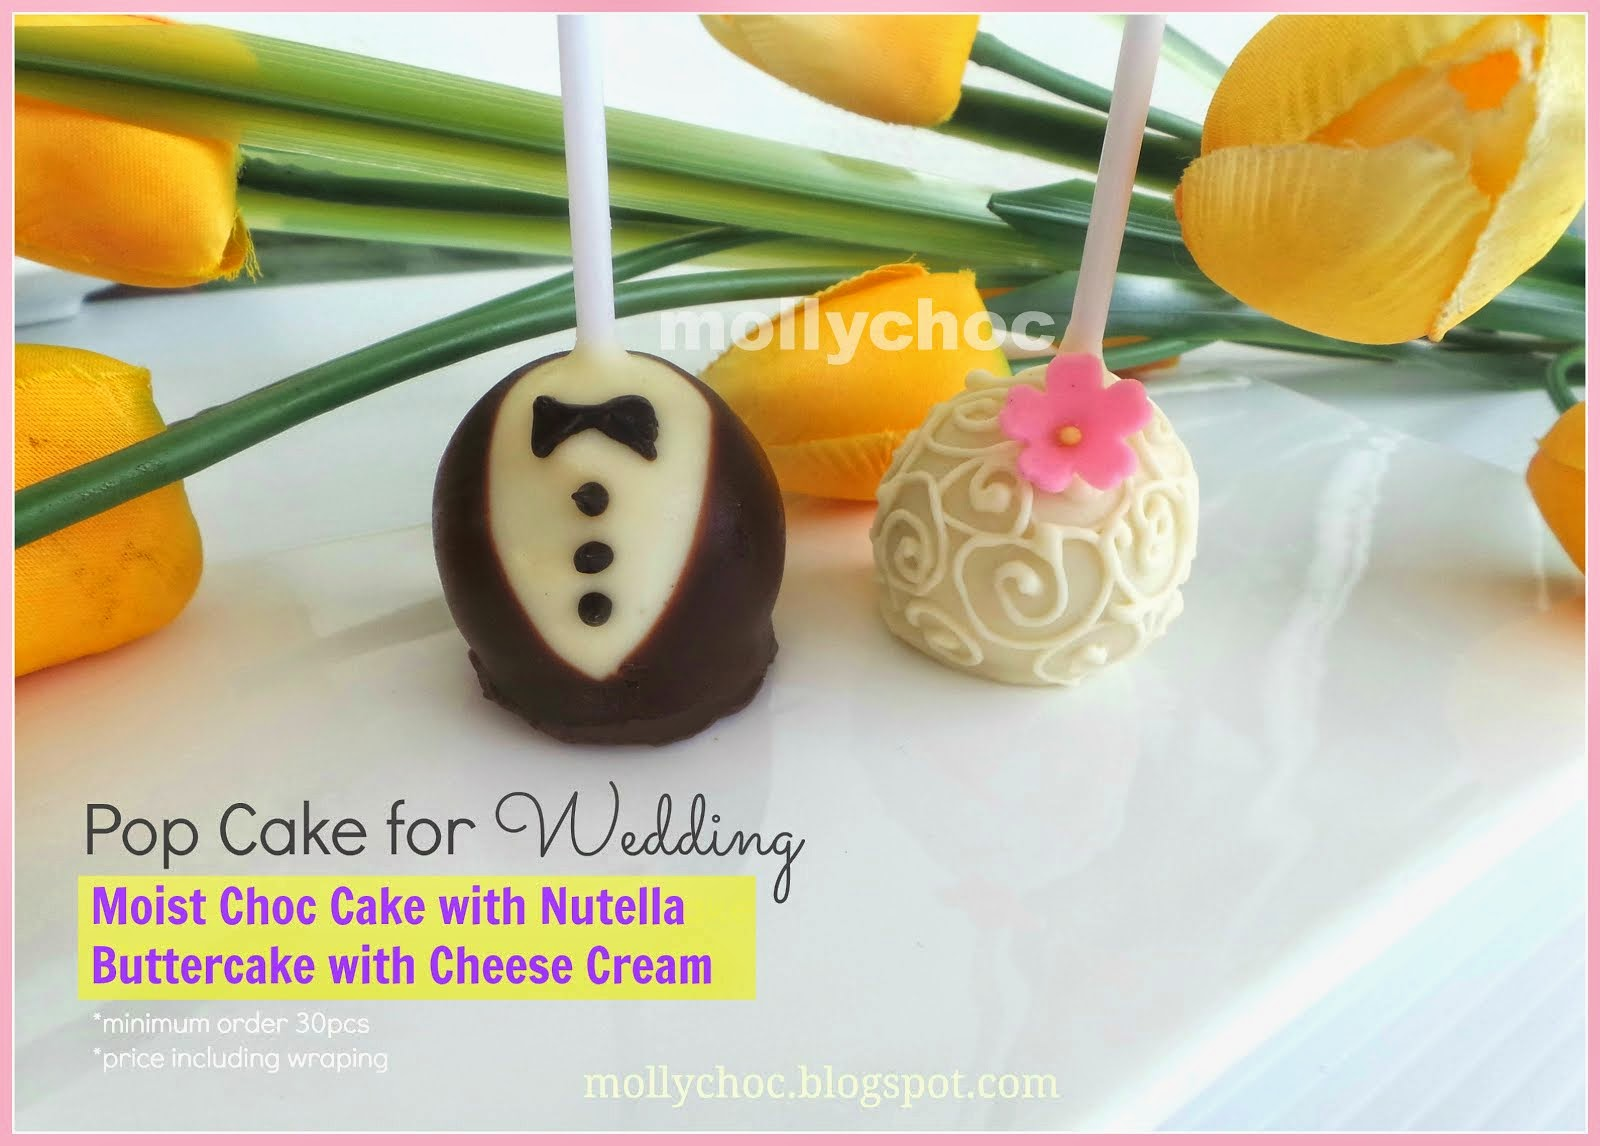 Popcake for Wedding